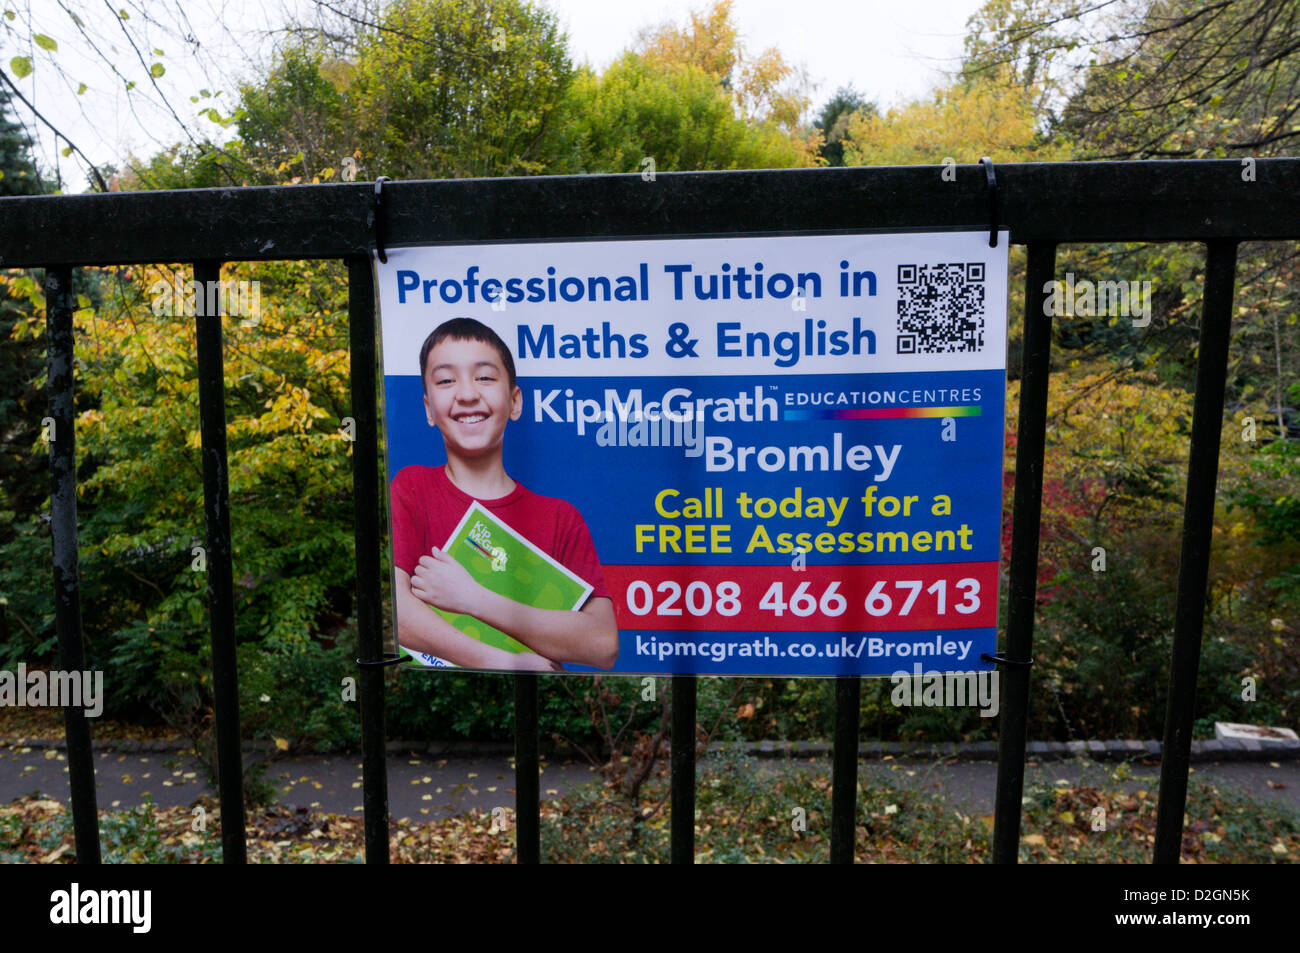 A sign for Kip McGrath Professional Tuition in Maths & English, containing a QR code which can be scanned for - Stock Image